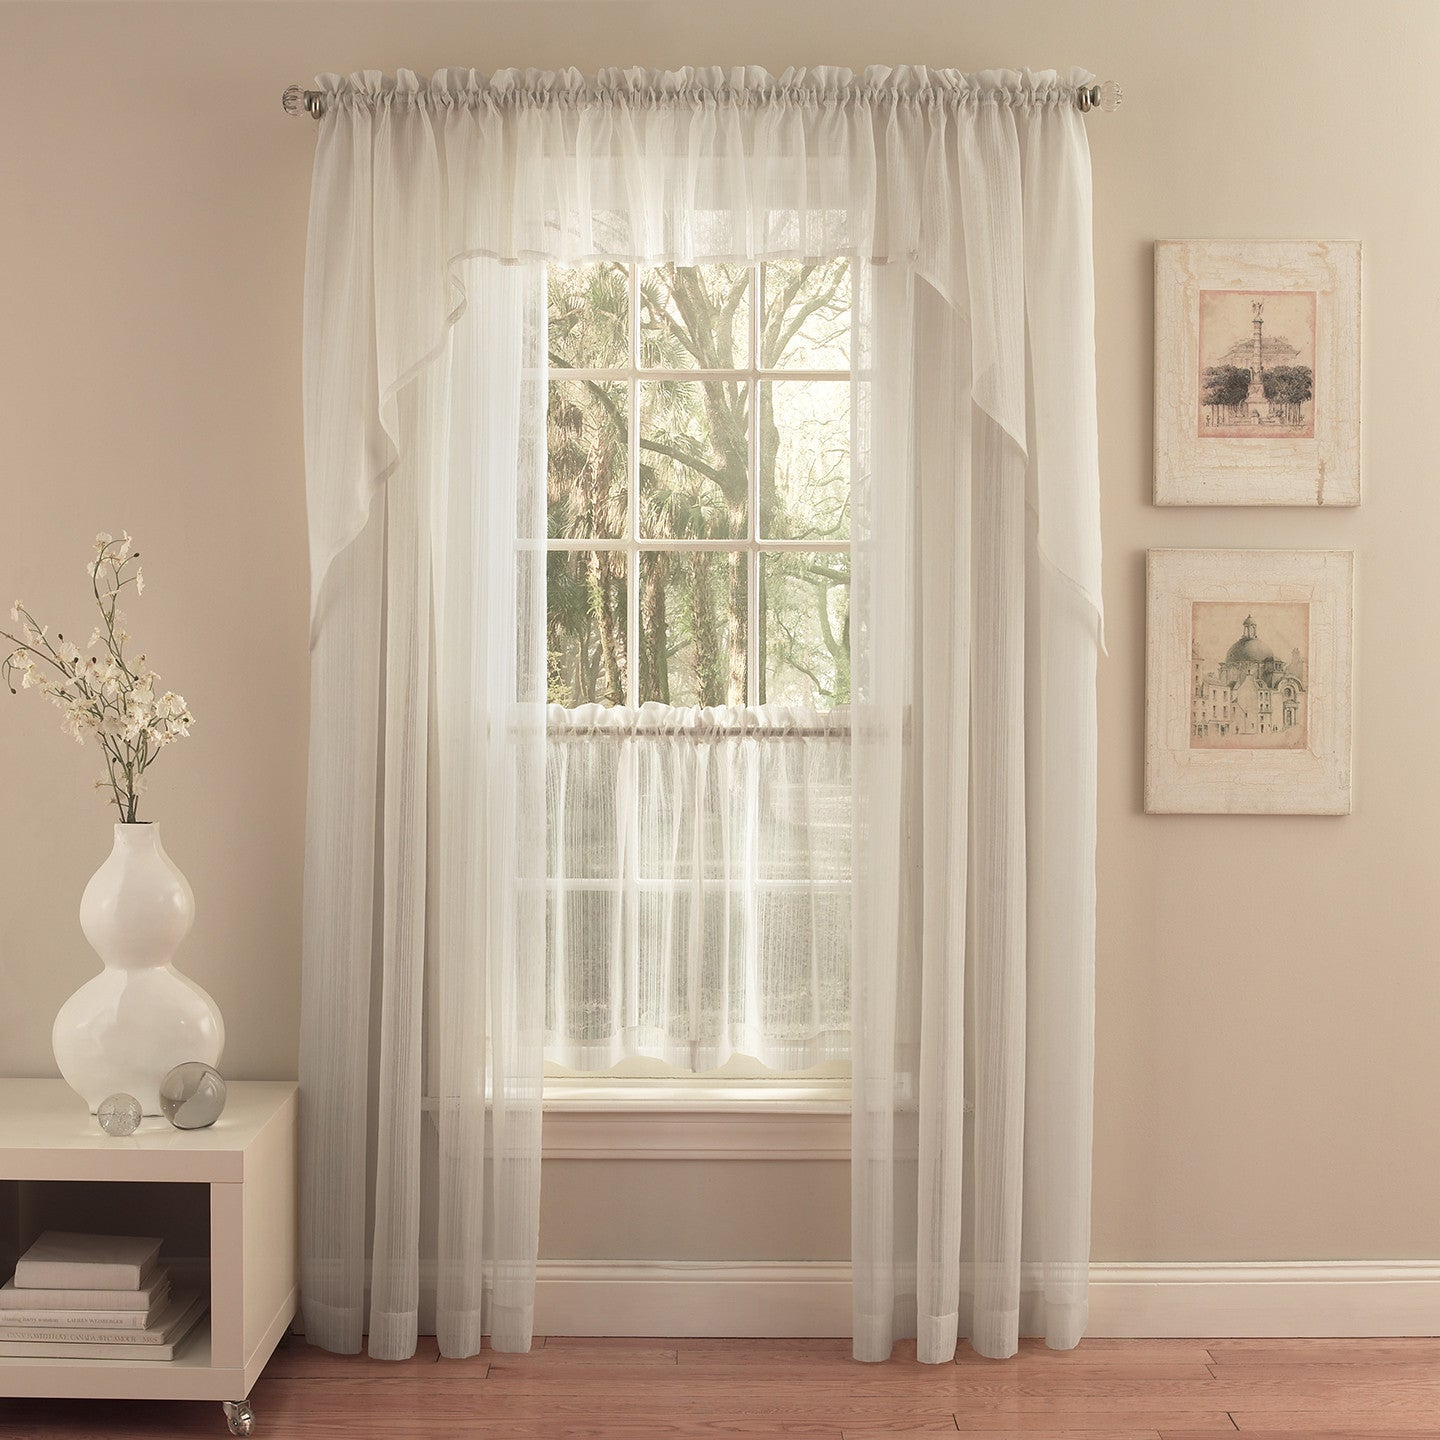 Harmony Sheer Rod Pocket Panel Collection - Panel   056x063 Ivory C28962- Marburn Curtains